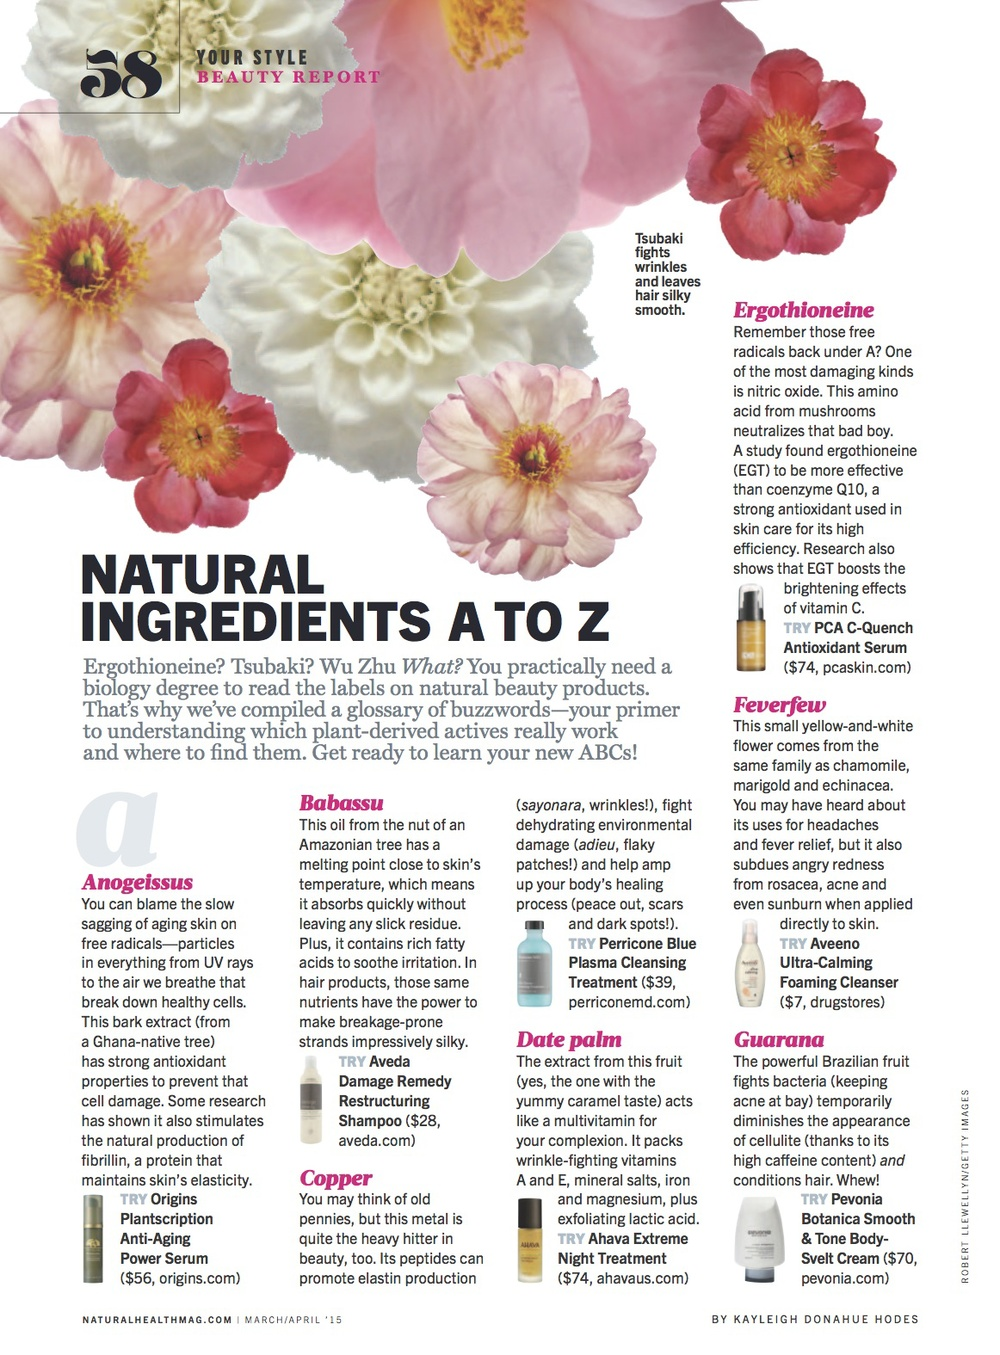 Natural Health - March/April 2015 — Kayleigh Donahue Hodes